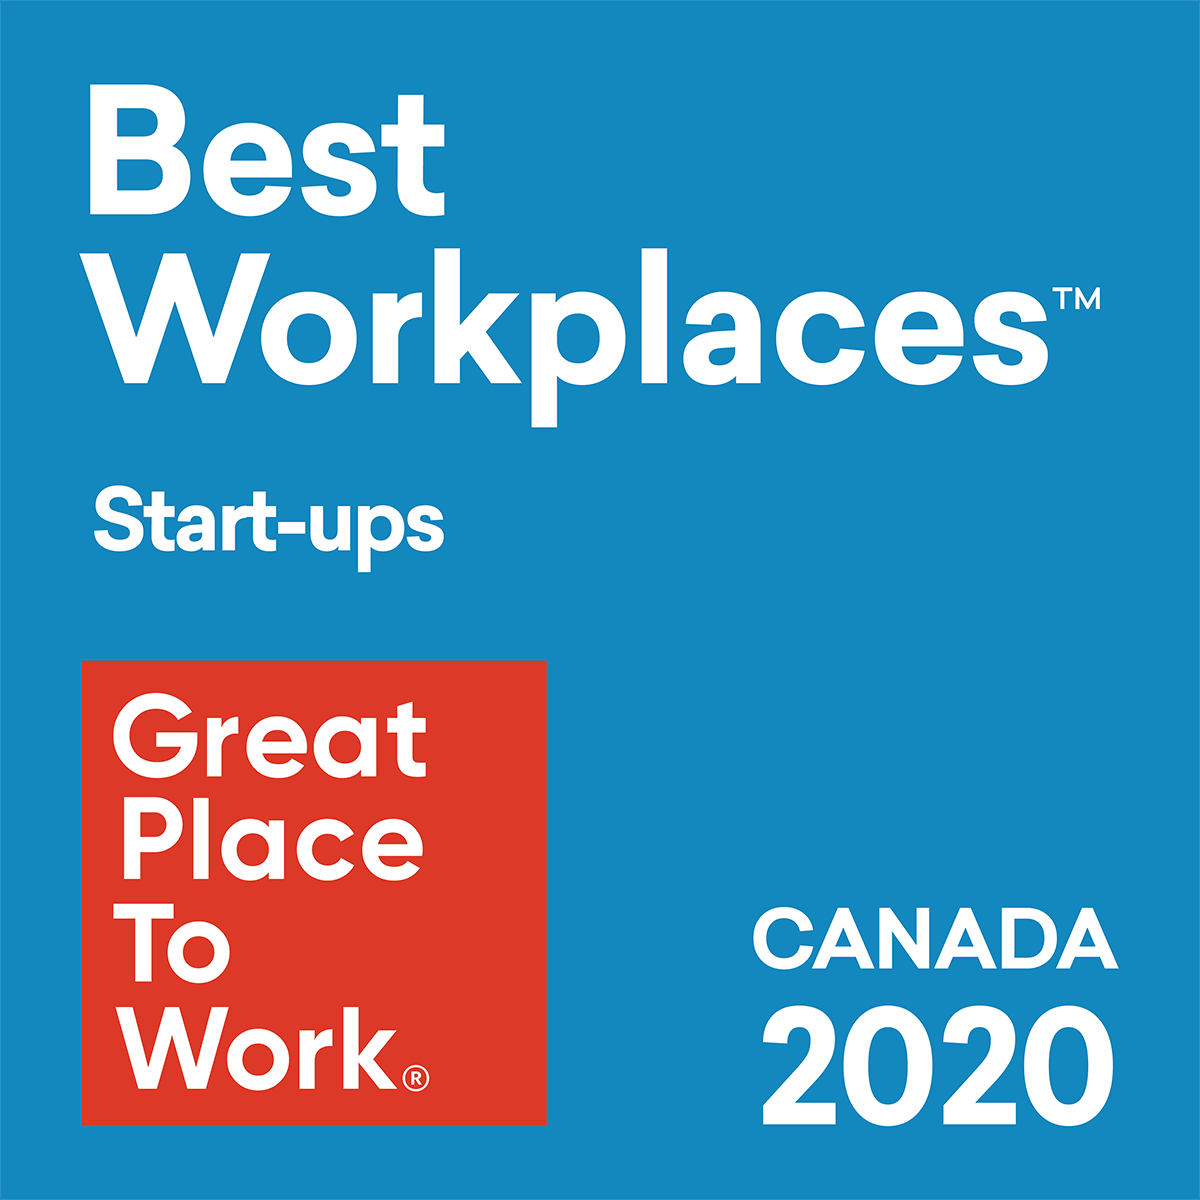 Great Place To Work 2020: Start-ups